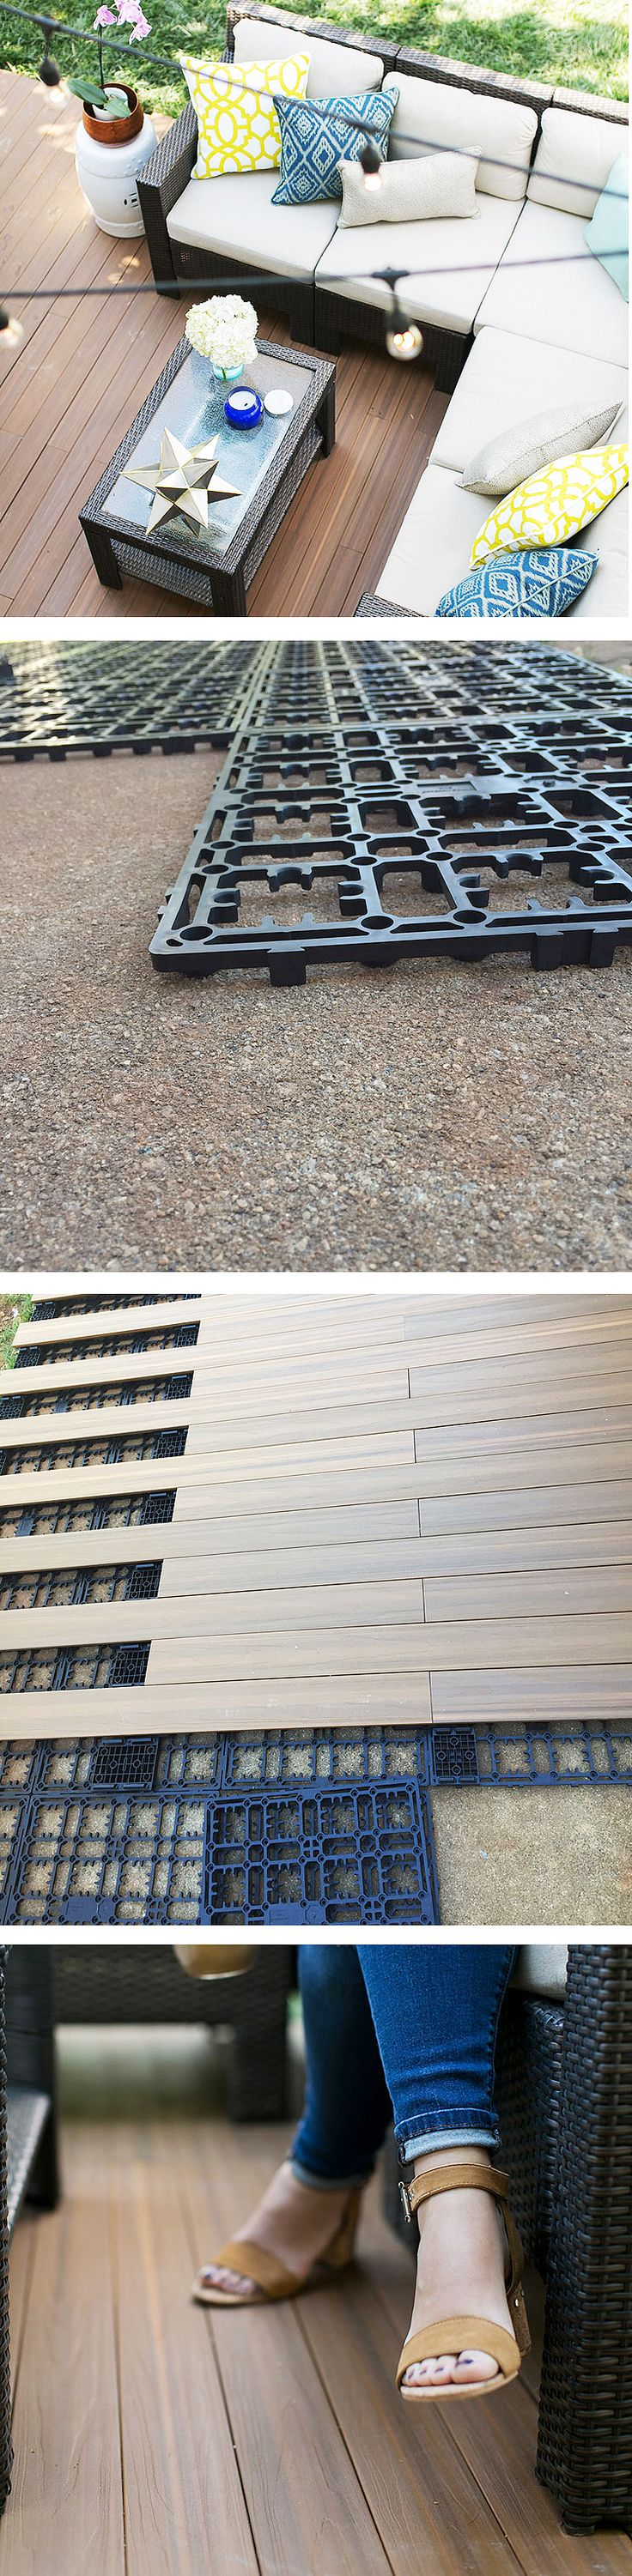 Laying deck flooring on a concrete slab patio turns it into an elegant outdoor space. Courtney Clymer of Lifestyled Atlanta shows how she layed planks on her patio. See it on The Home Depot Blog.